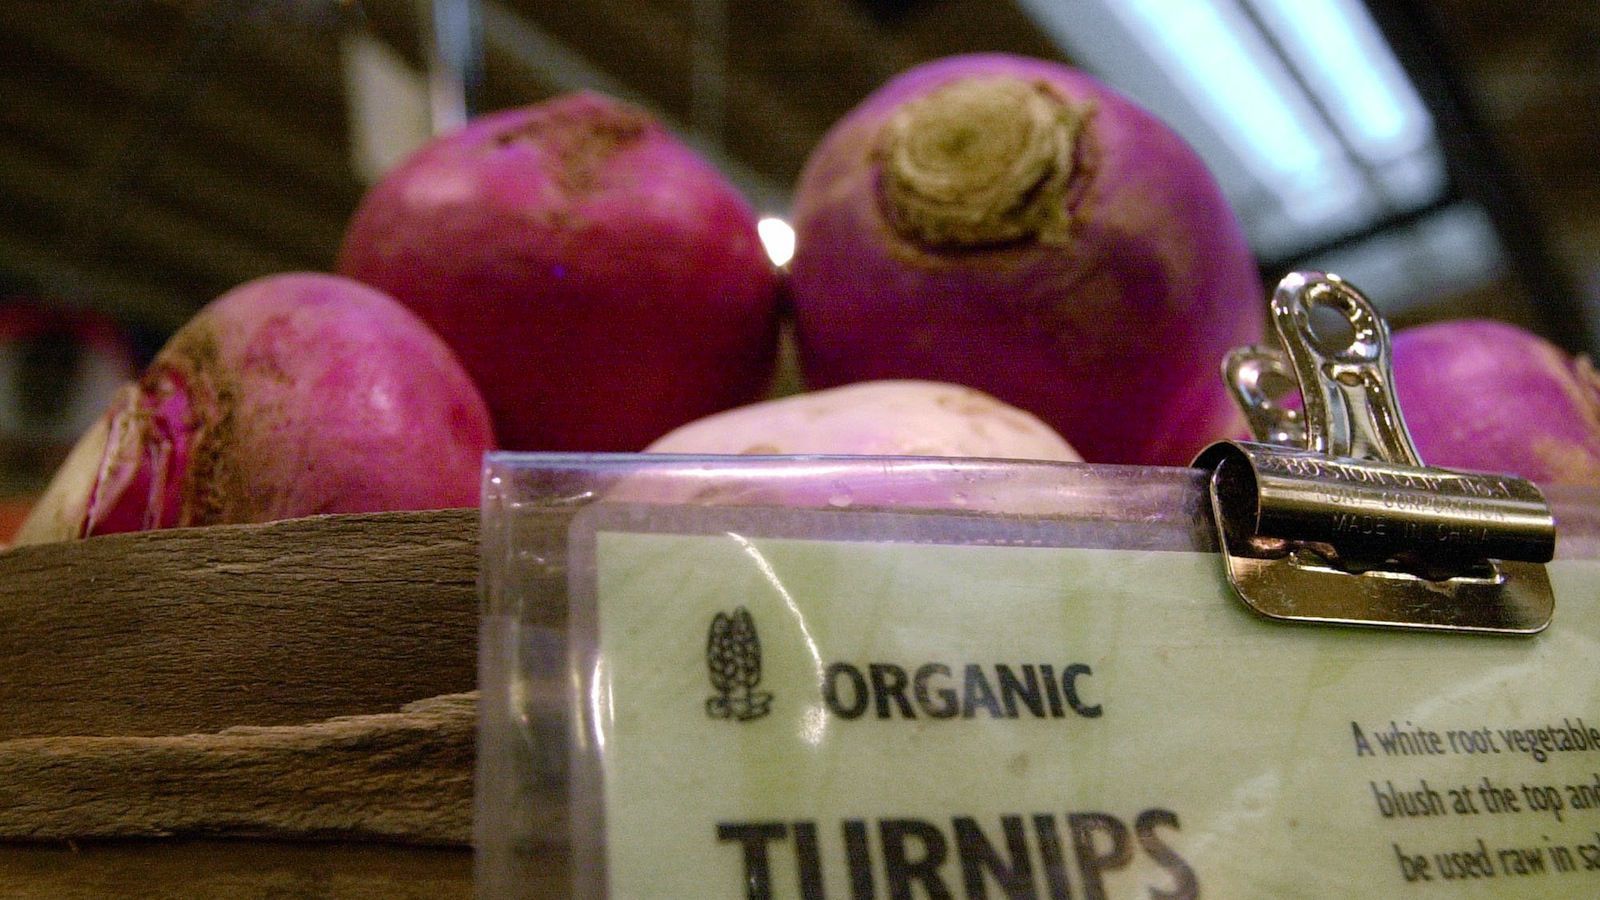 ** ADVANCE FOR WEEKEND EDITIONS NOV. 2-3 ** Organic turnips are clearly marked as they sit in a basket Wednesday, Oct. 30, 2002, at the Puget Consumers Co-op in Seattle's Greenlake neighborhood. Grocery stores are building barriers, pasting up warning labels and reorganizing storage units to keep organic and non-organic foods separate. New federal rules for organic certification require the establishment of a sort of Mason-Dixon line dividing the two, with penalties in some cases of up to $10,000 if food represented as organic is contaminated with non-organic compounds. (AP Photo/Elaine Thompson)